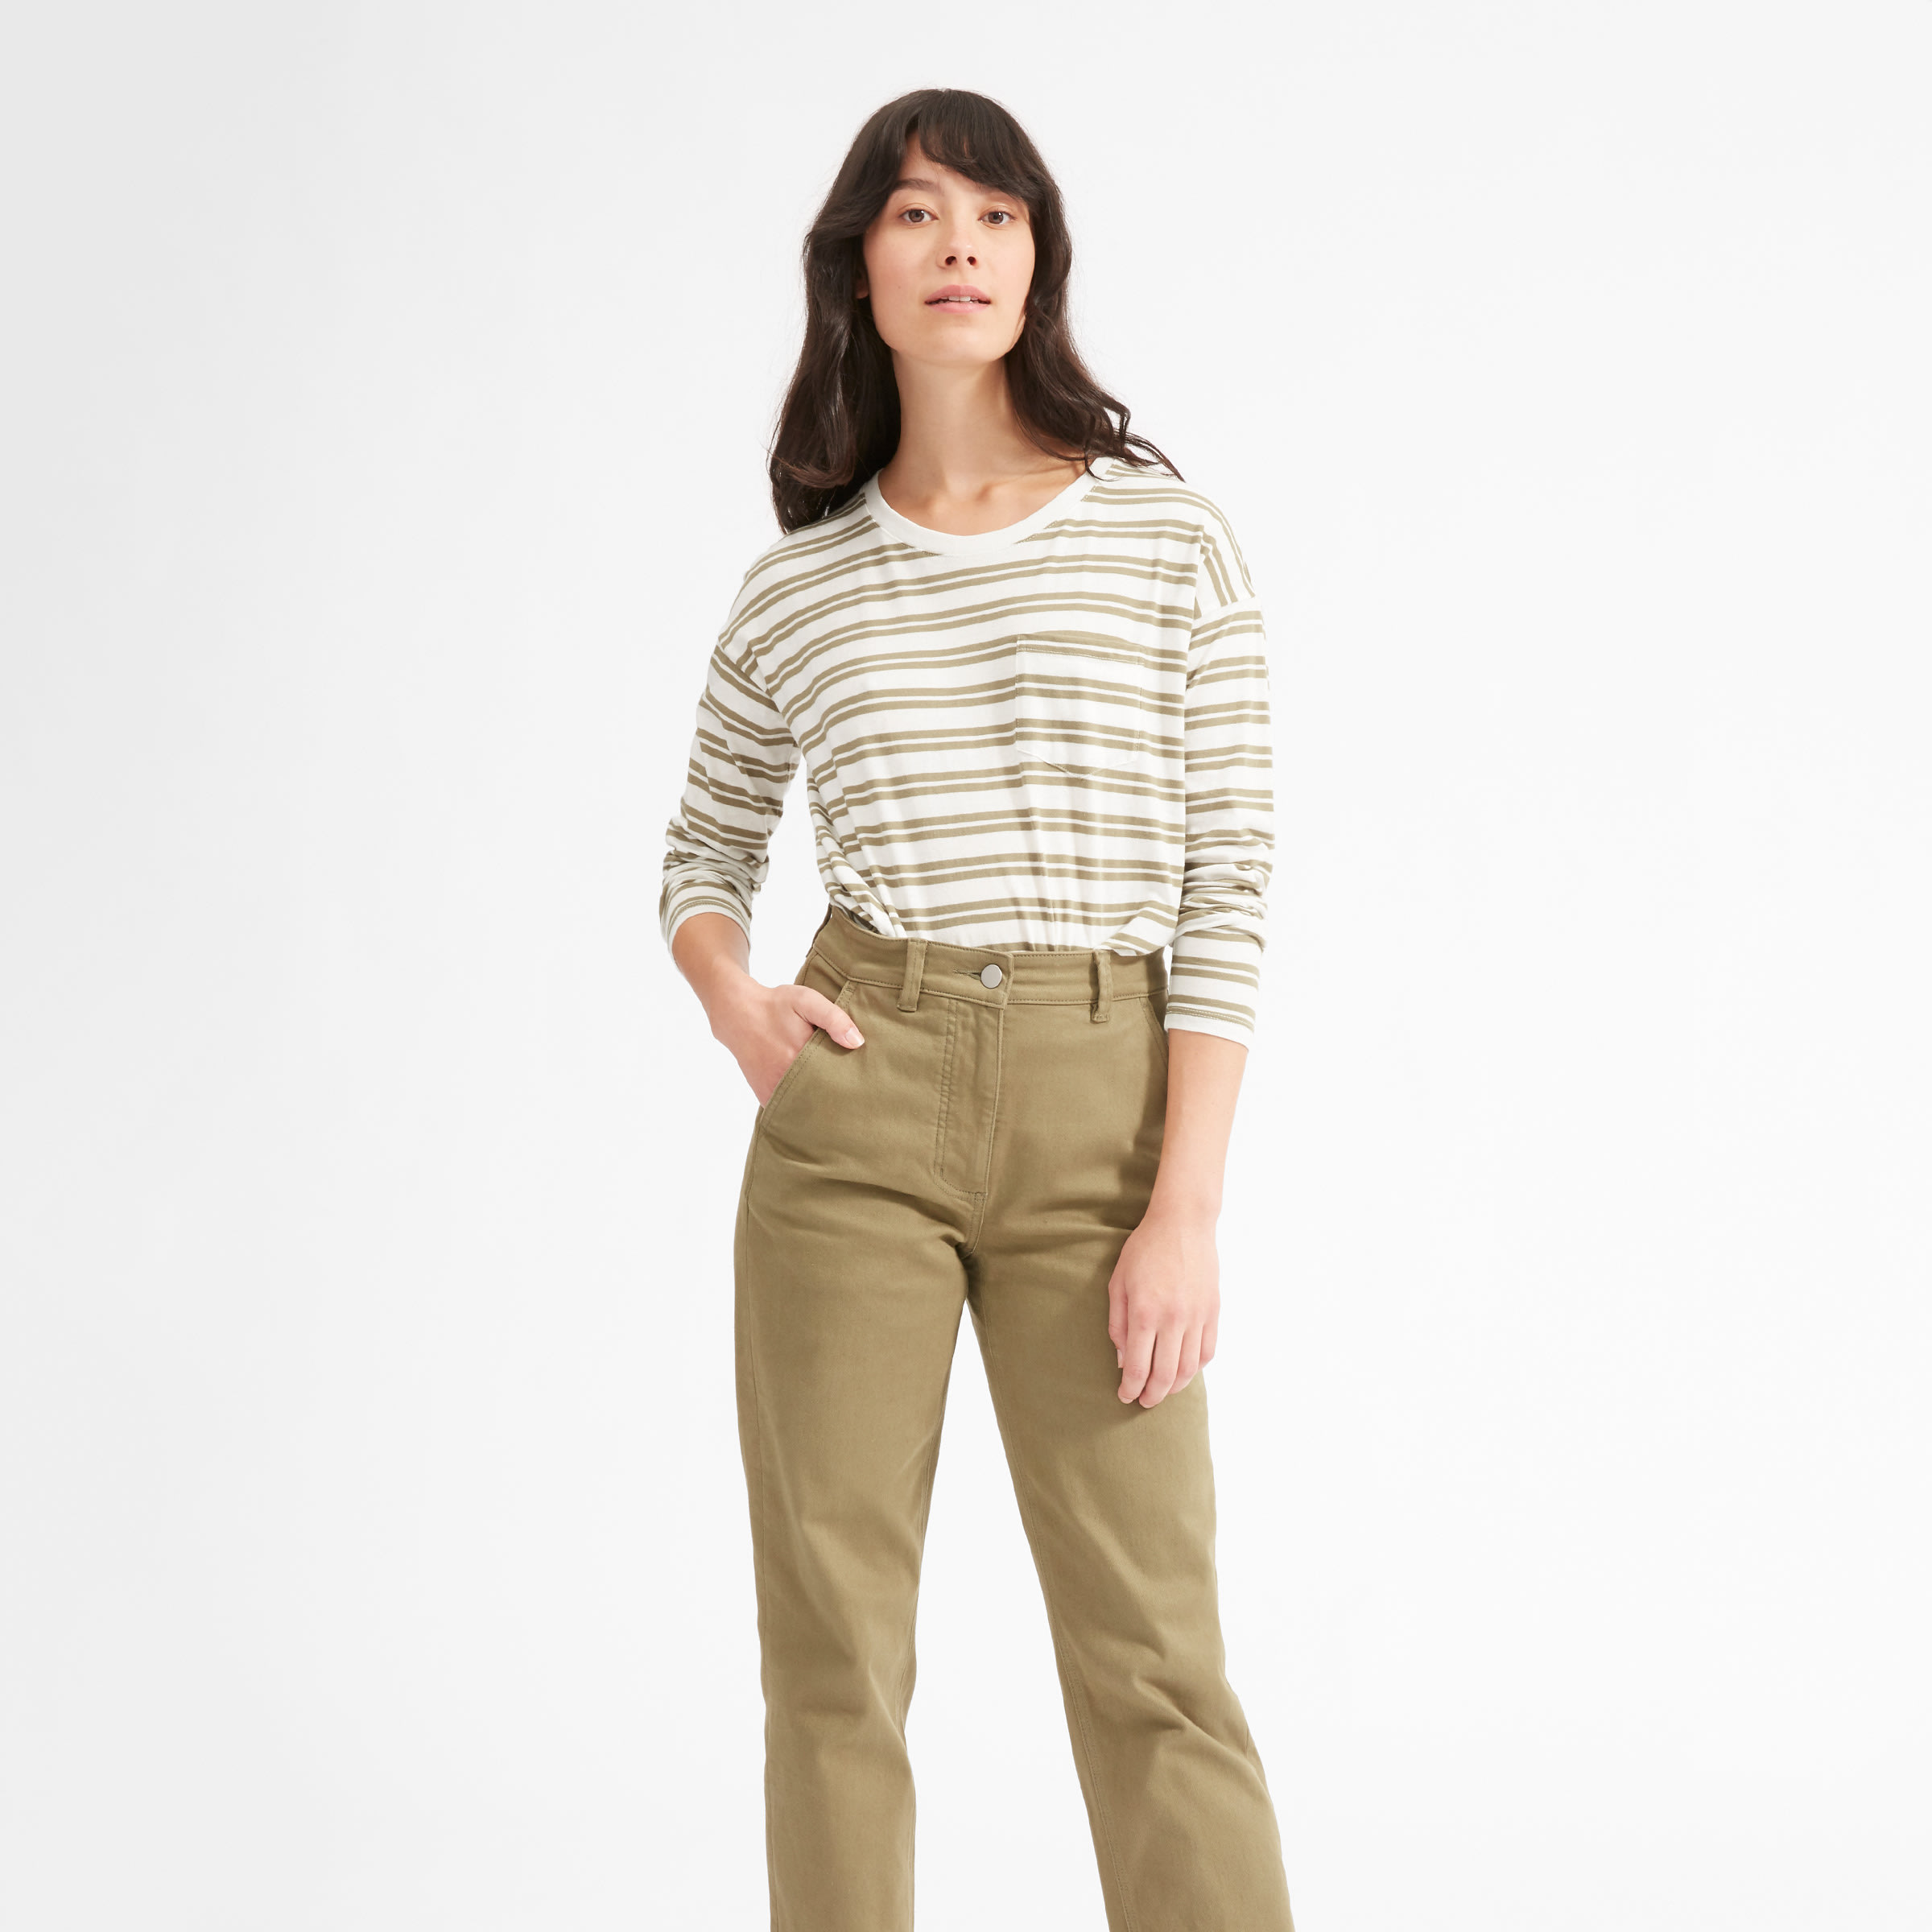 ab82a7d6 Women's Long-Sleeve Box-Cut Tee | Everlane